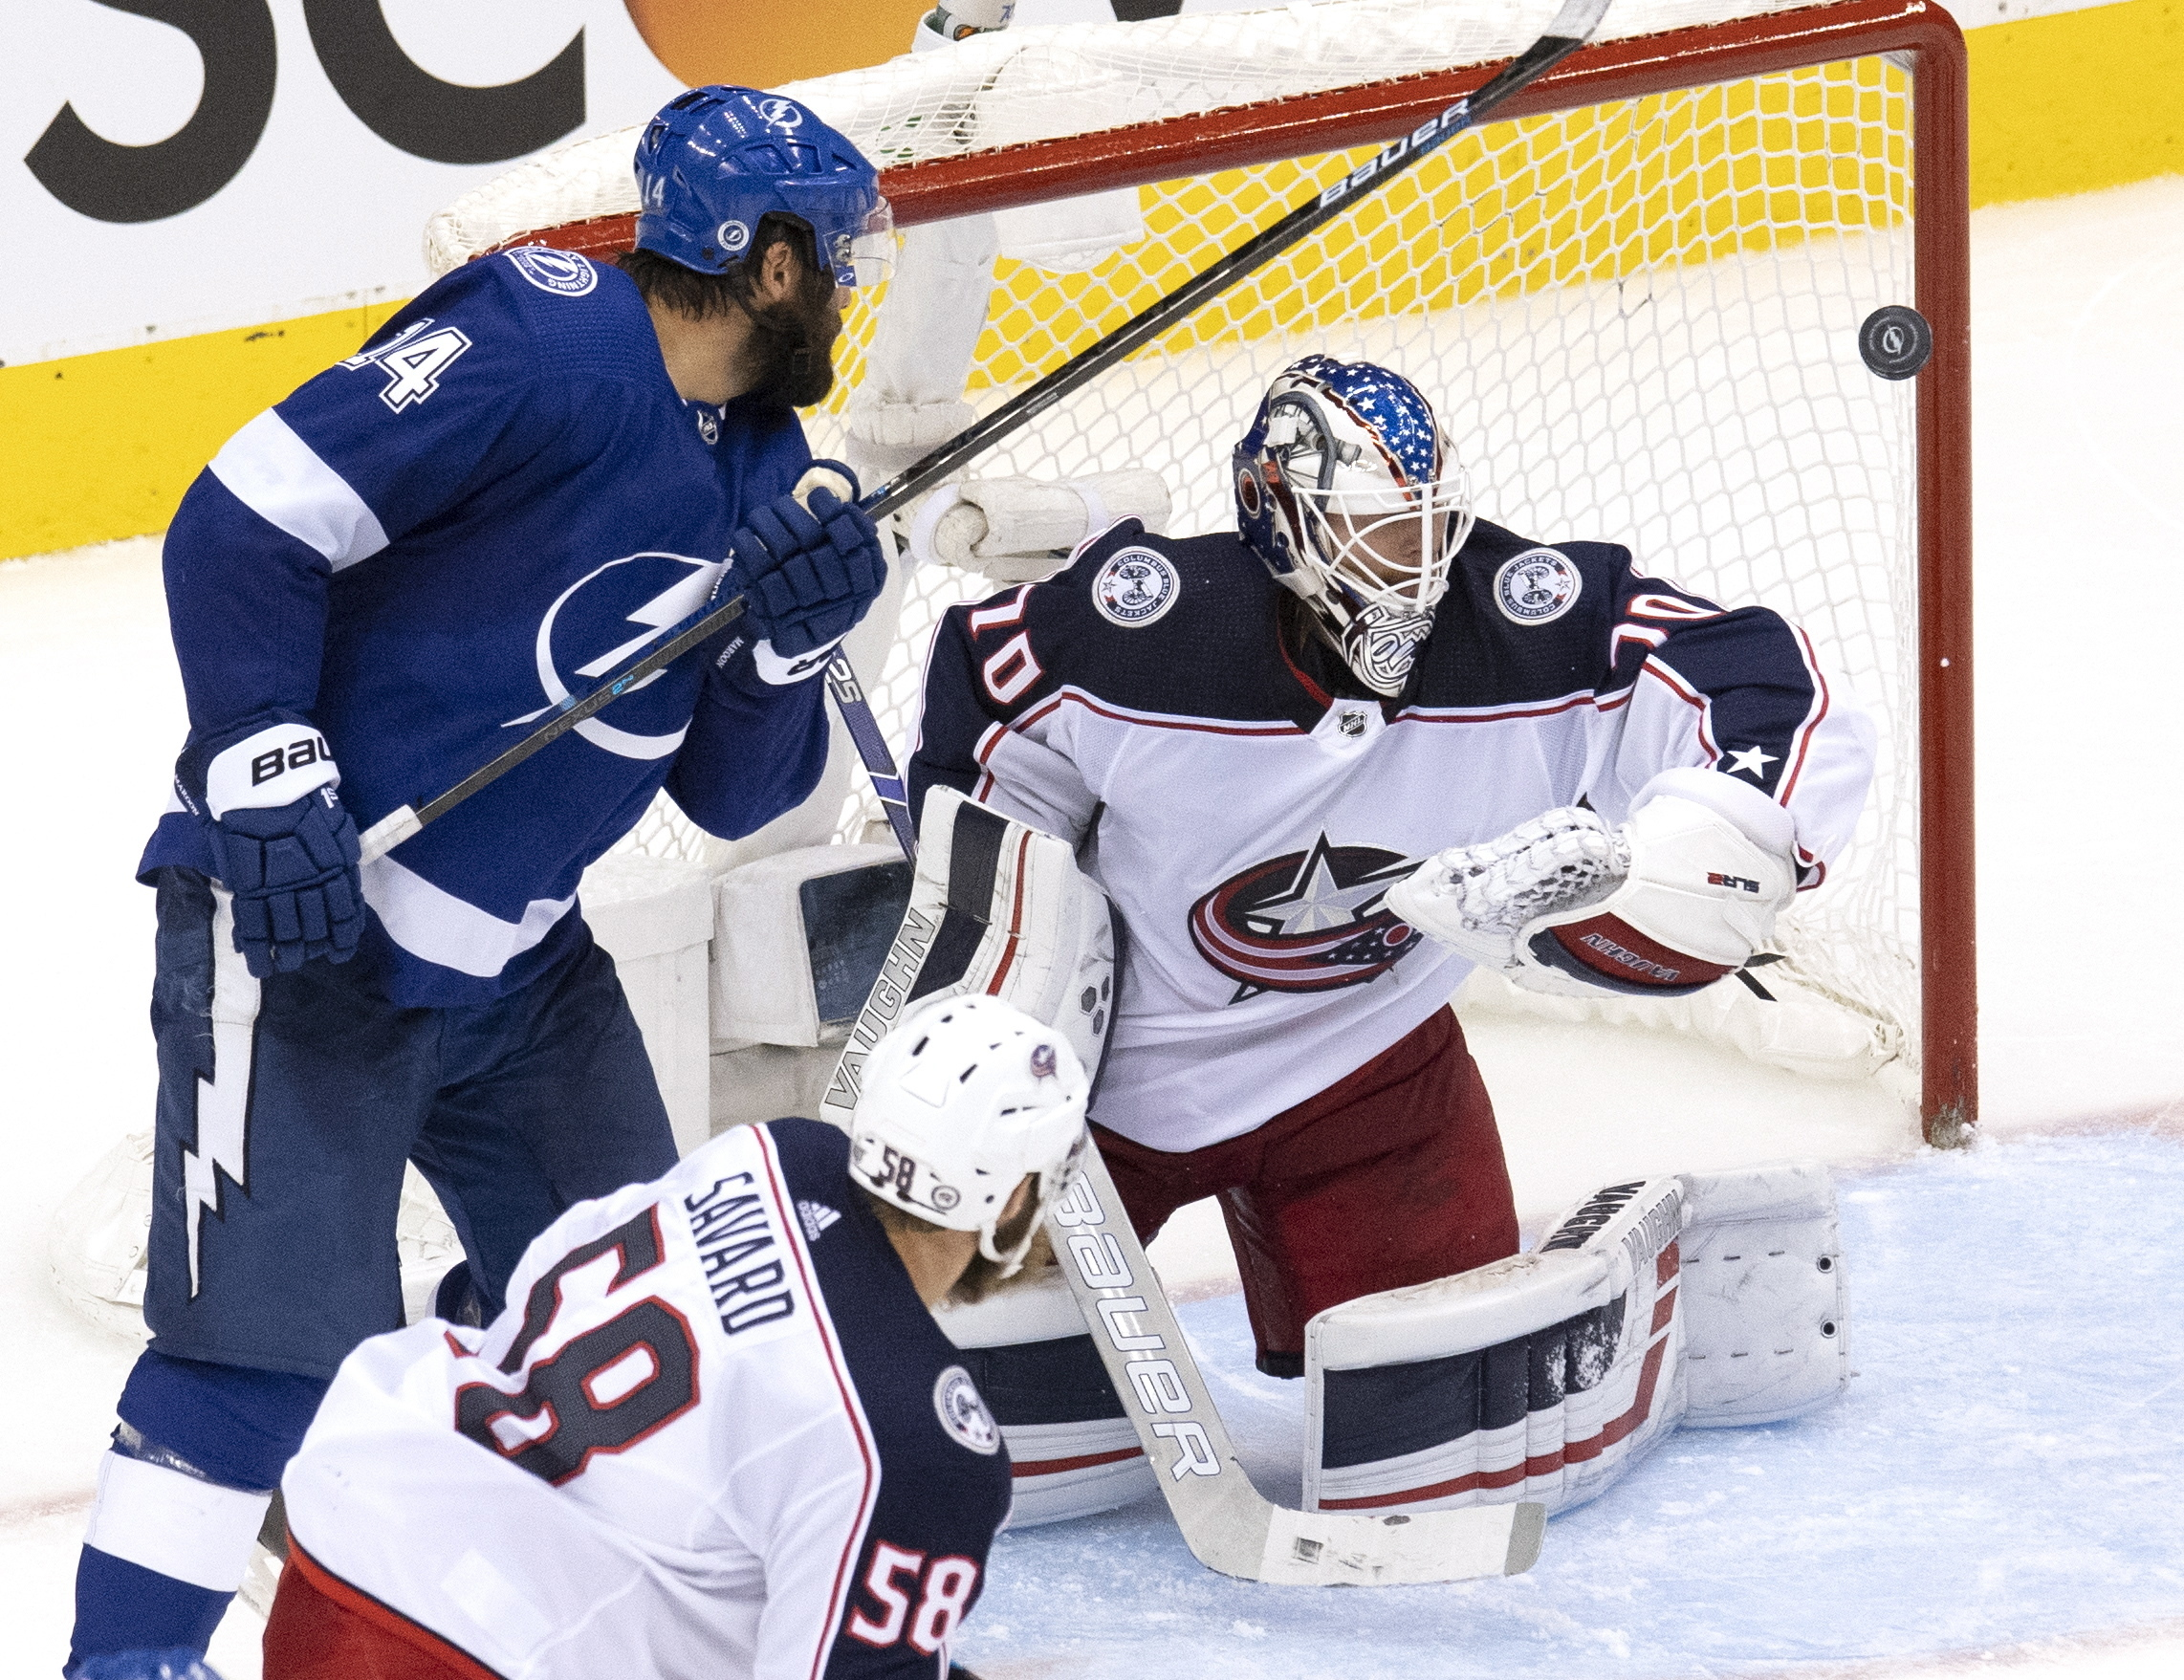 Tampa Bay Lightning Vs Columbus Blue Jackets Free Live Stream 8 15 20 Watch Nhl Stanley Cup Playoffs Game 3 Online Time Tv Channel Nj Com